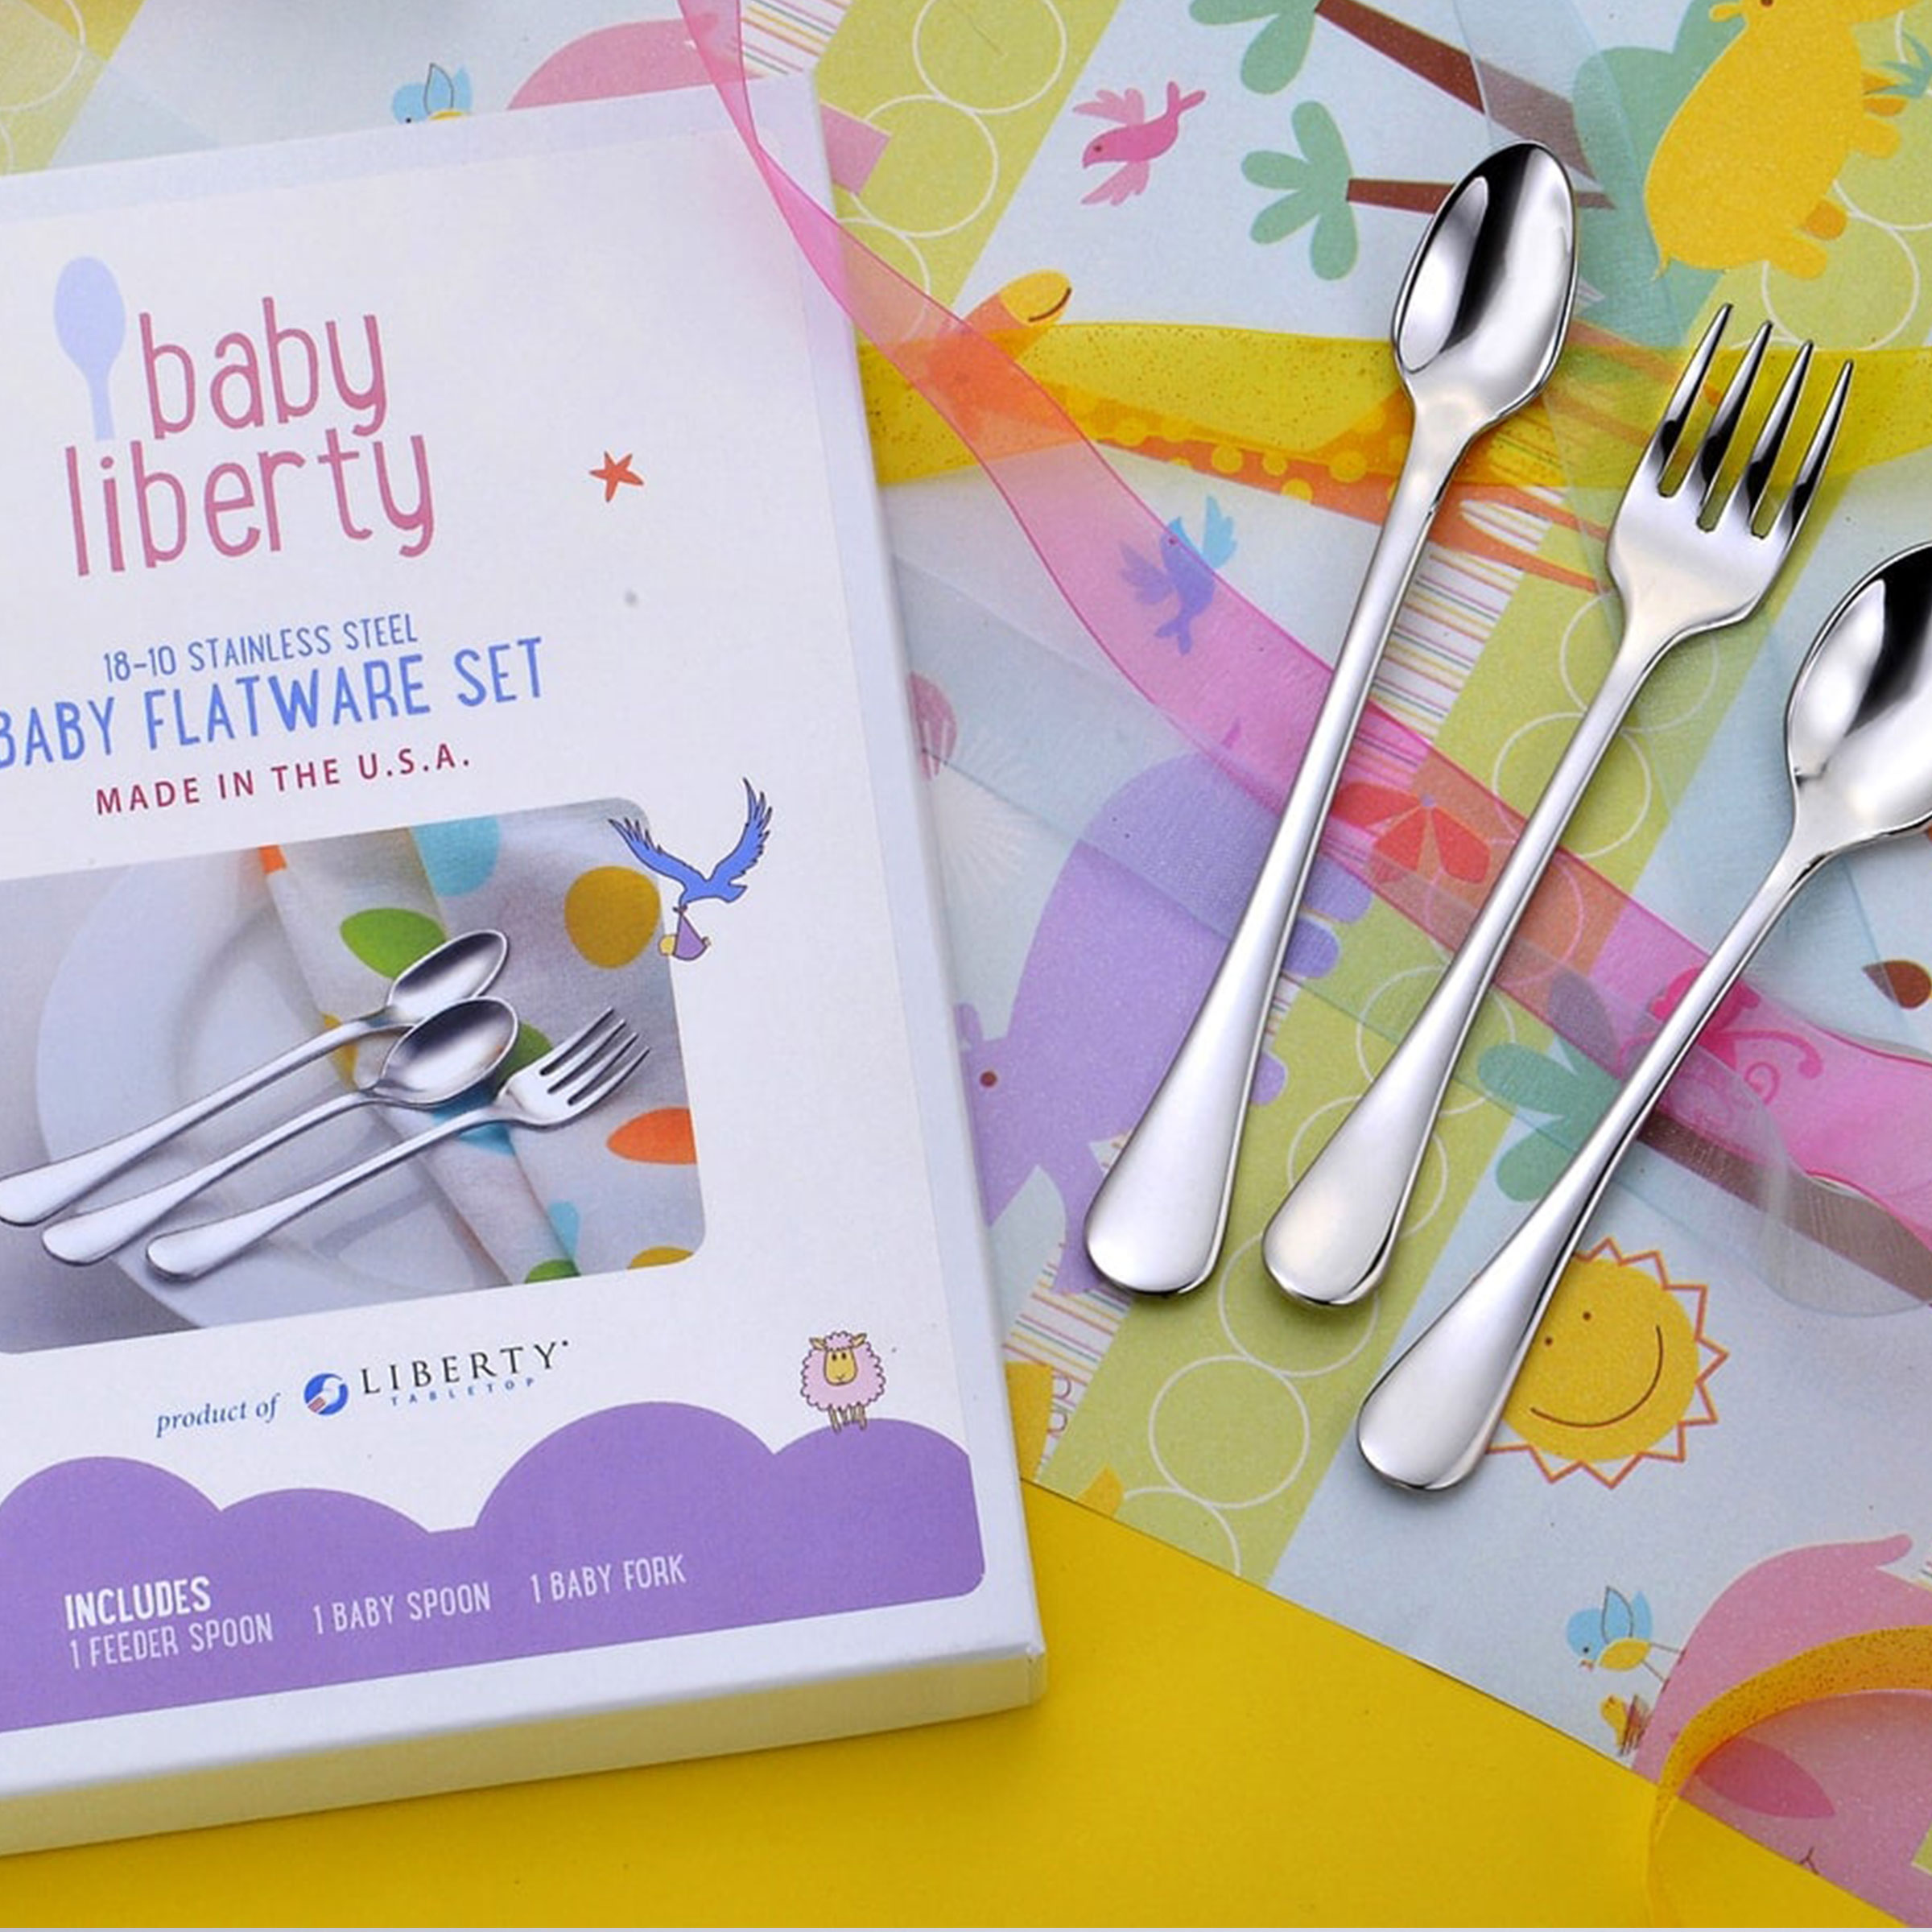 baby liberty archives liberty tabletop